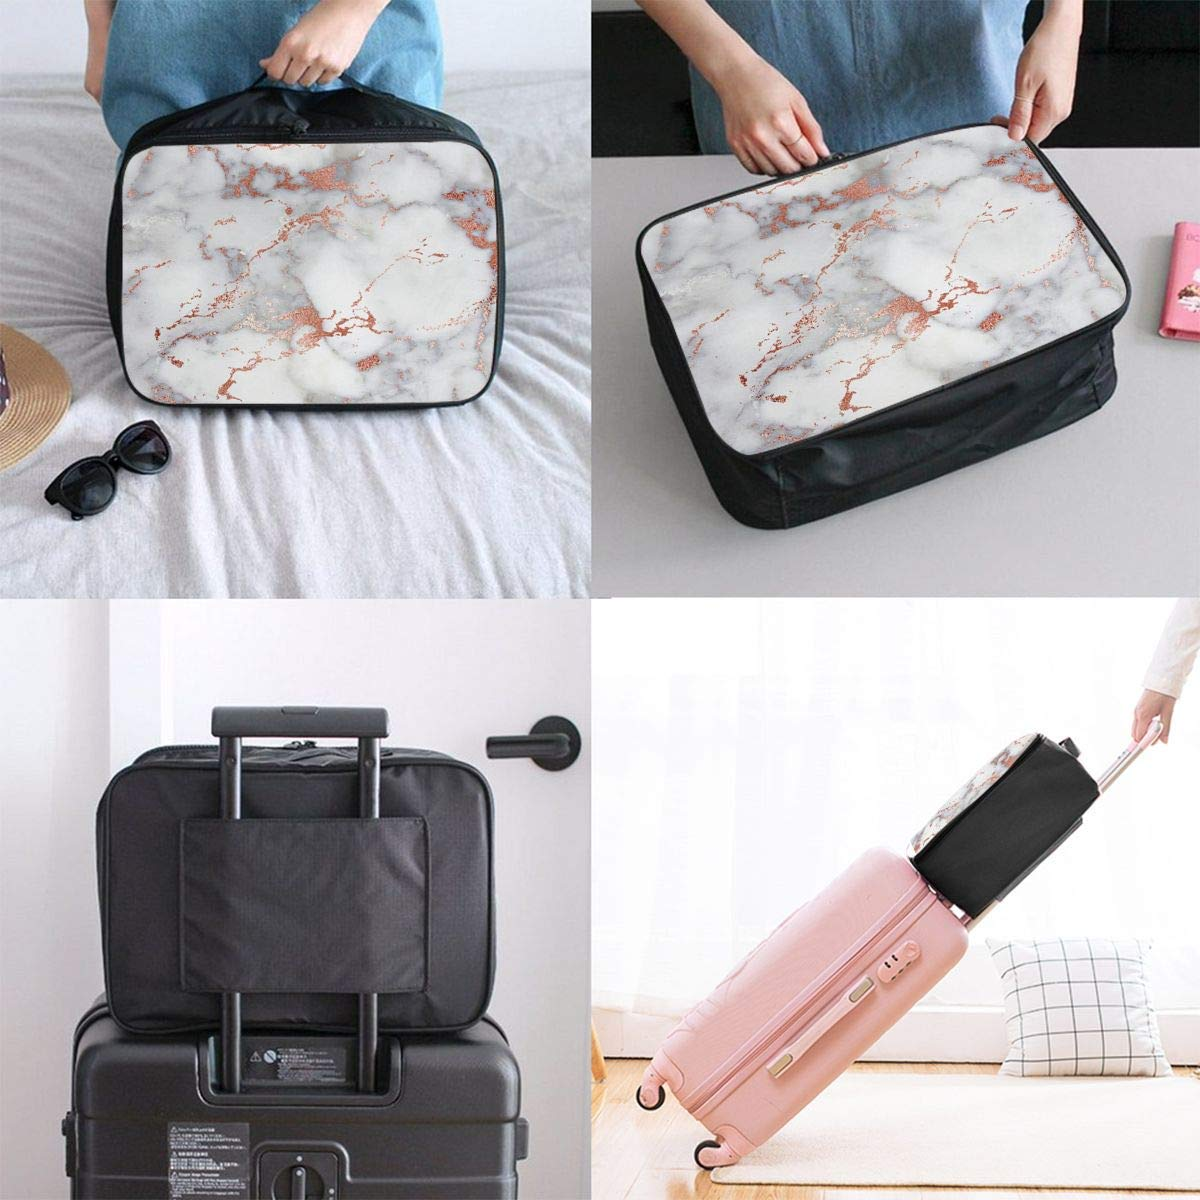 Rose Gold Marble Travel Lightweight Waterproof Foldable Storage Carry Luggage Duffle Tote Bag JTRVW Luggage Bags for Travel